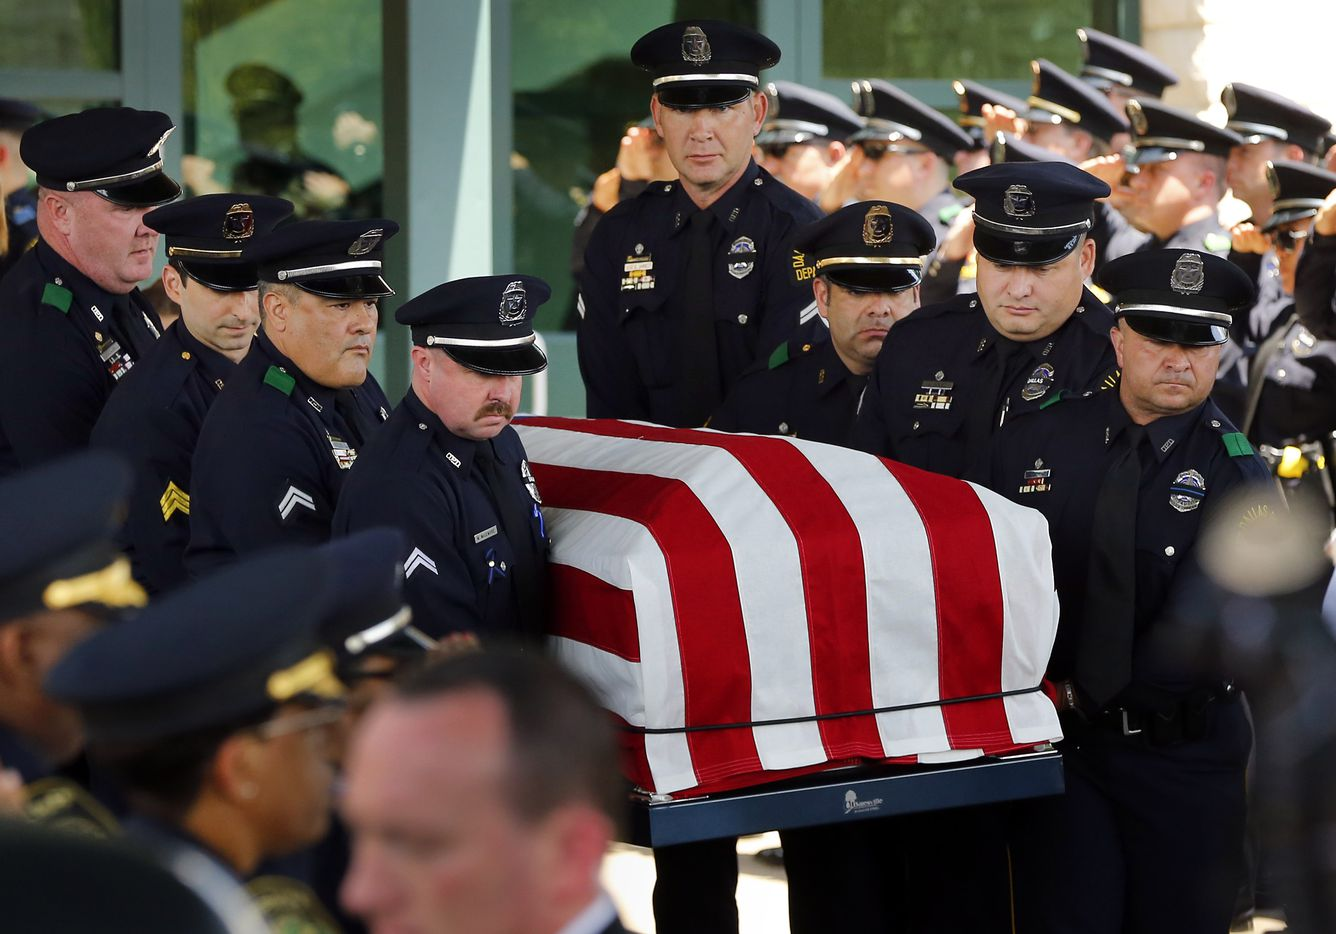 Police pallbearers carry the flag draped casket of fallen Dallas police officer Lorne Ahrens from Prestonwood Baptist Church in Plano, Wednesday, July 12, 2016.